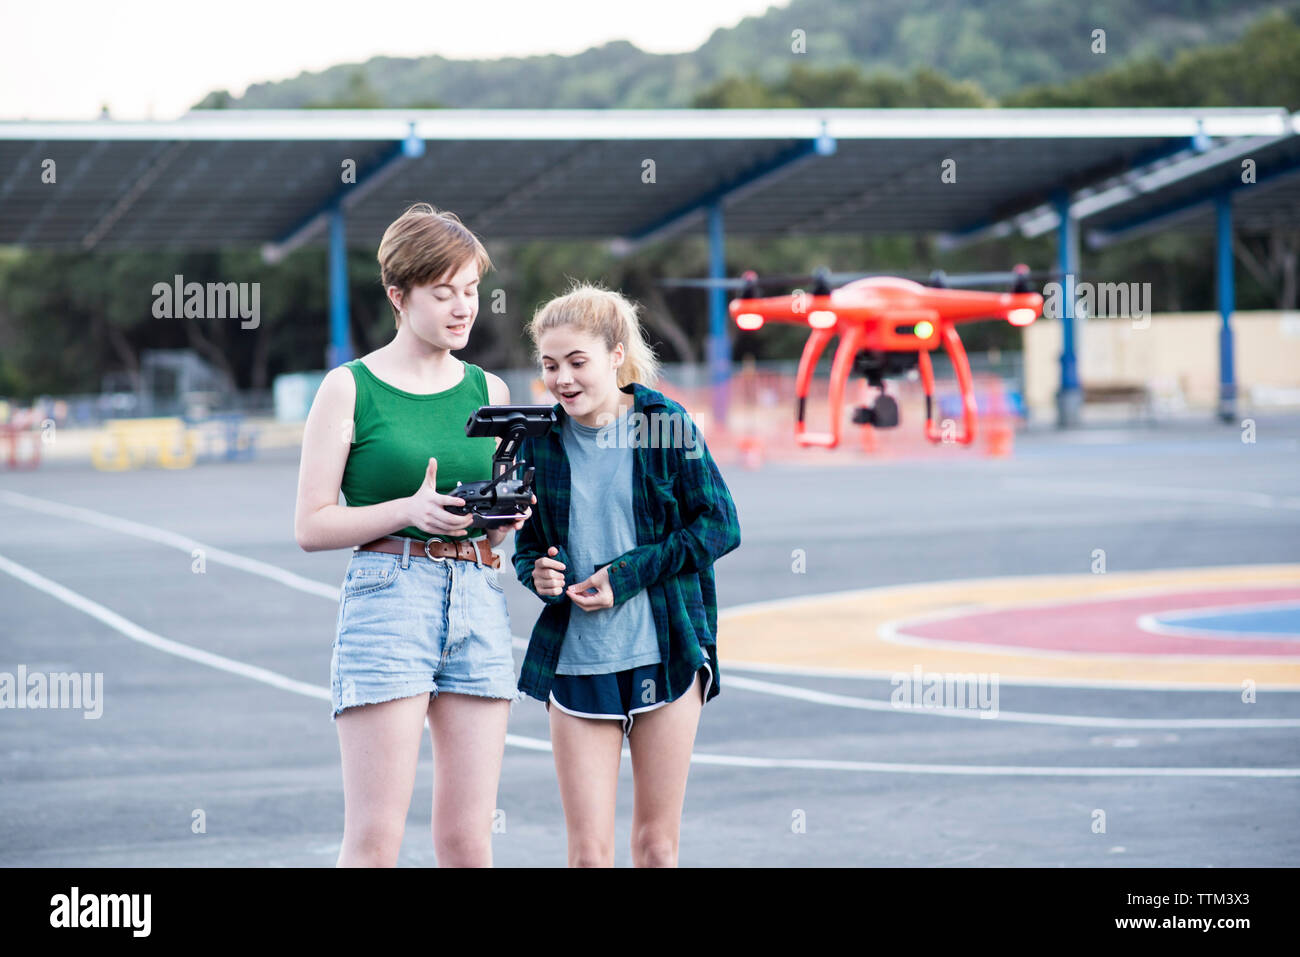 Teenage friends operating quadcopter at park - Stock Image